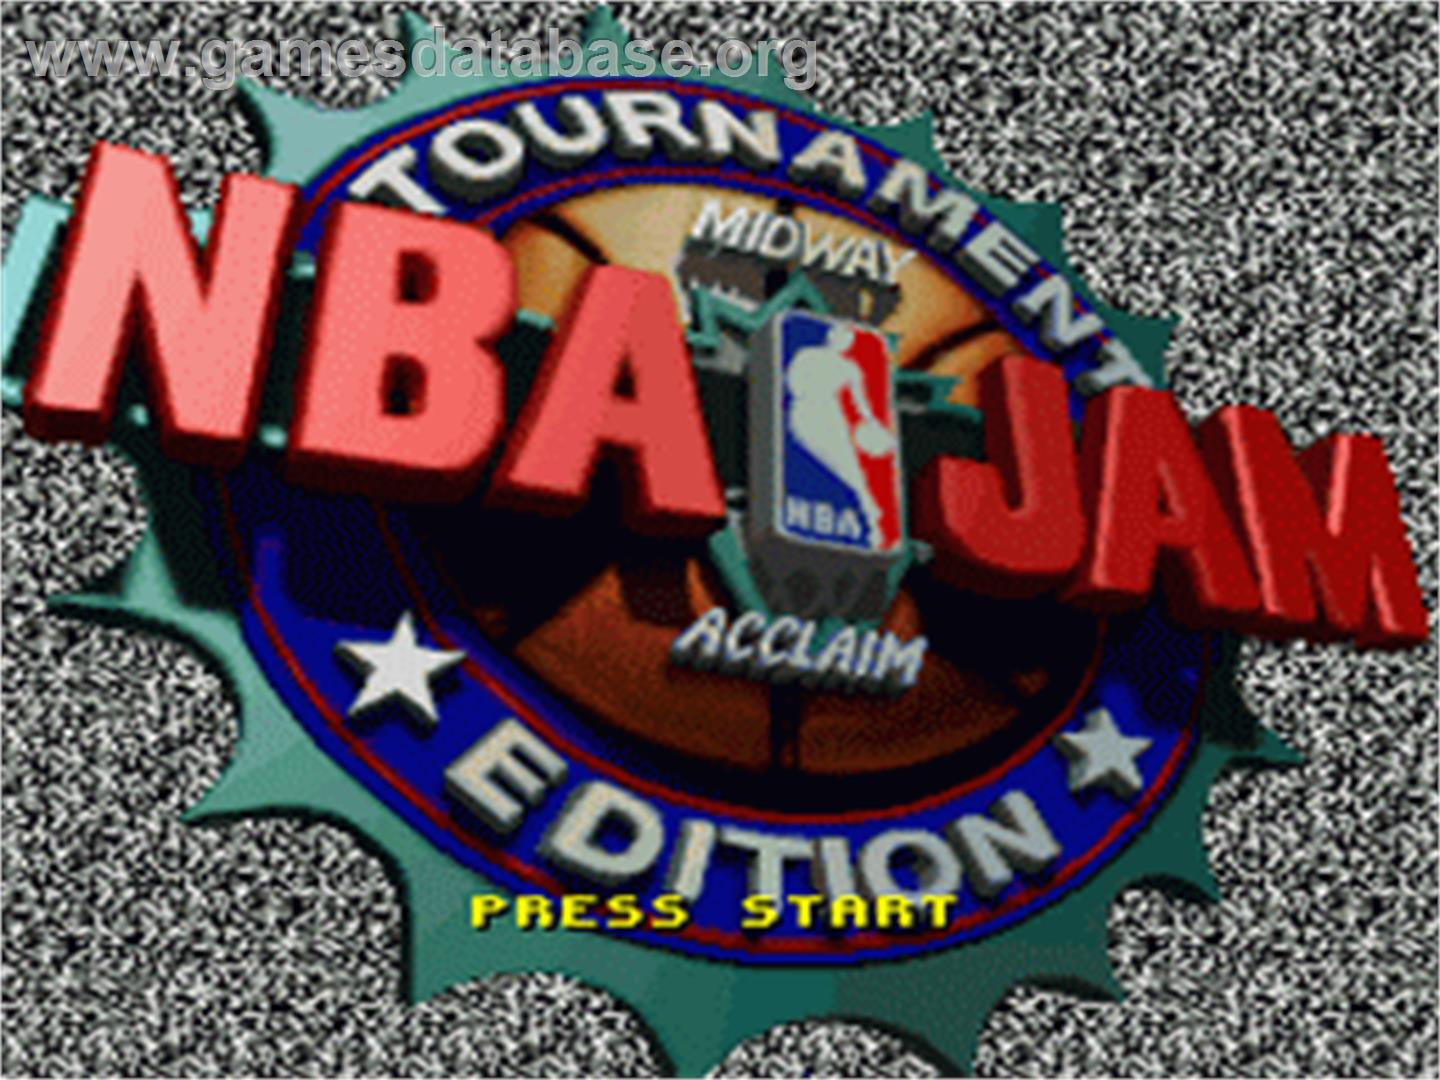 Related pictures nba jam game gear funny iguana logo with a basketball